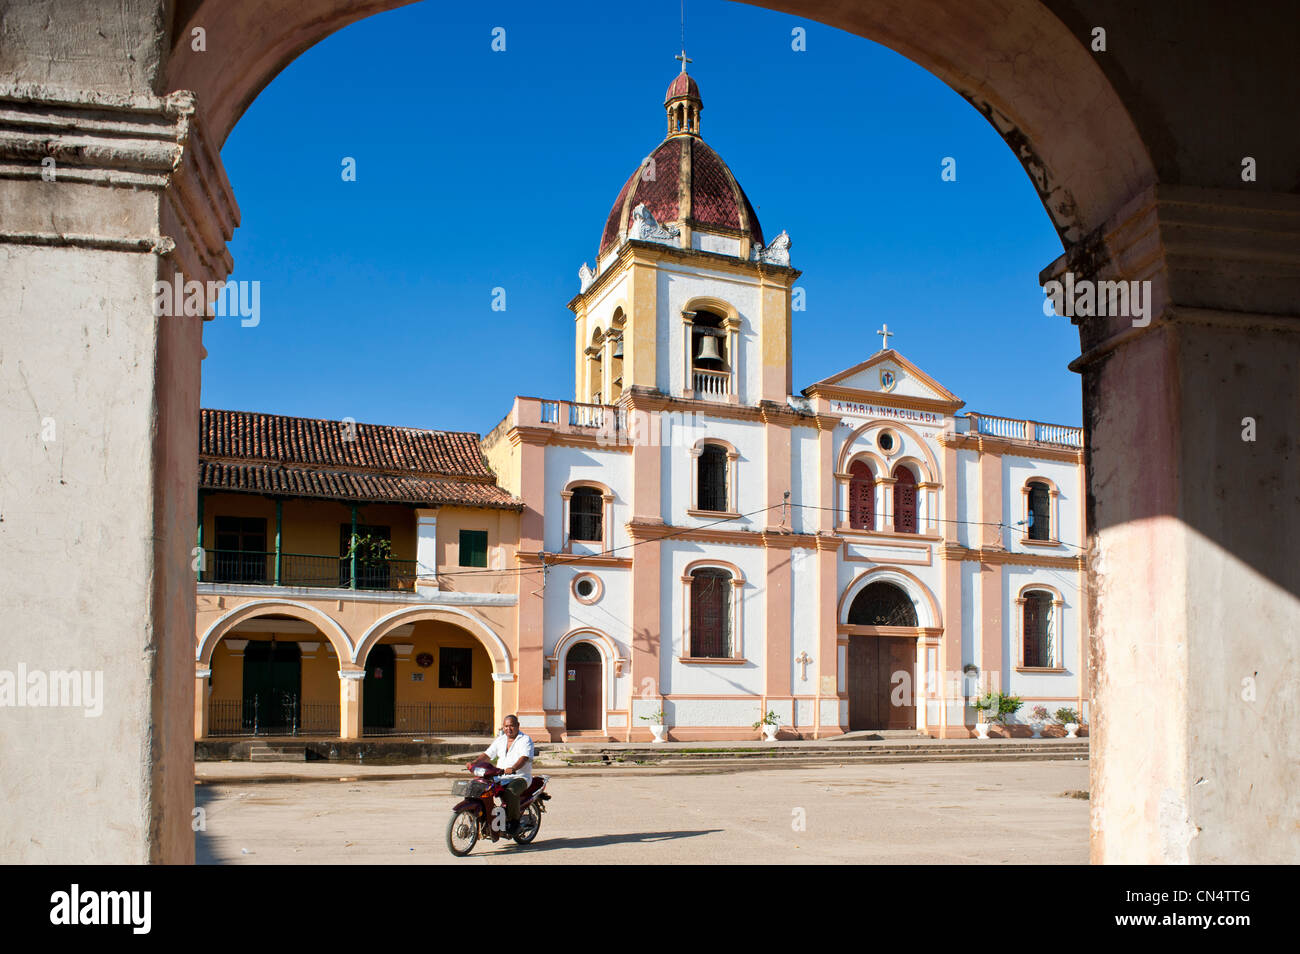 Colombia, Bolivar Department, Mompox (or Mompos), city founded in 1540 and listed as World Heritage by UNESCO, the - Stock Image